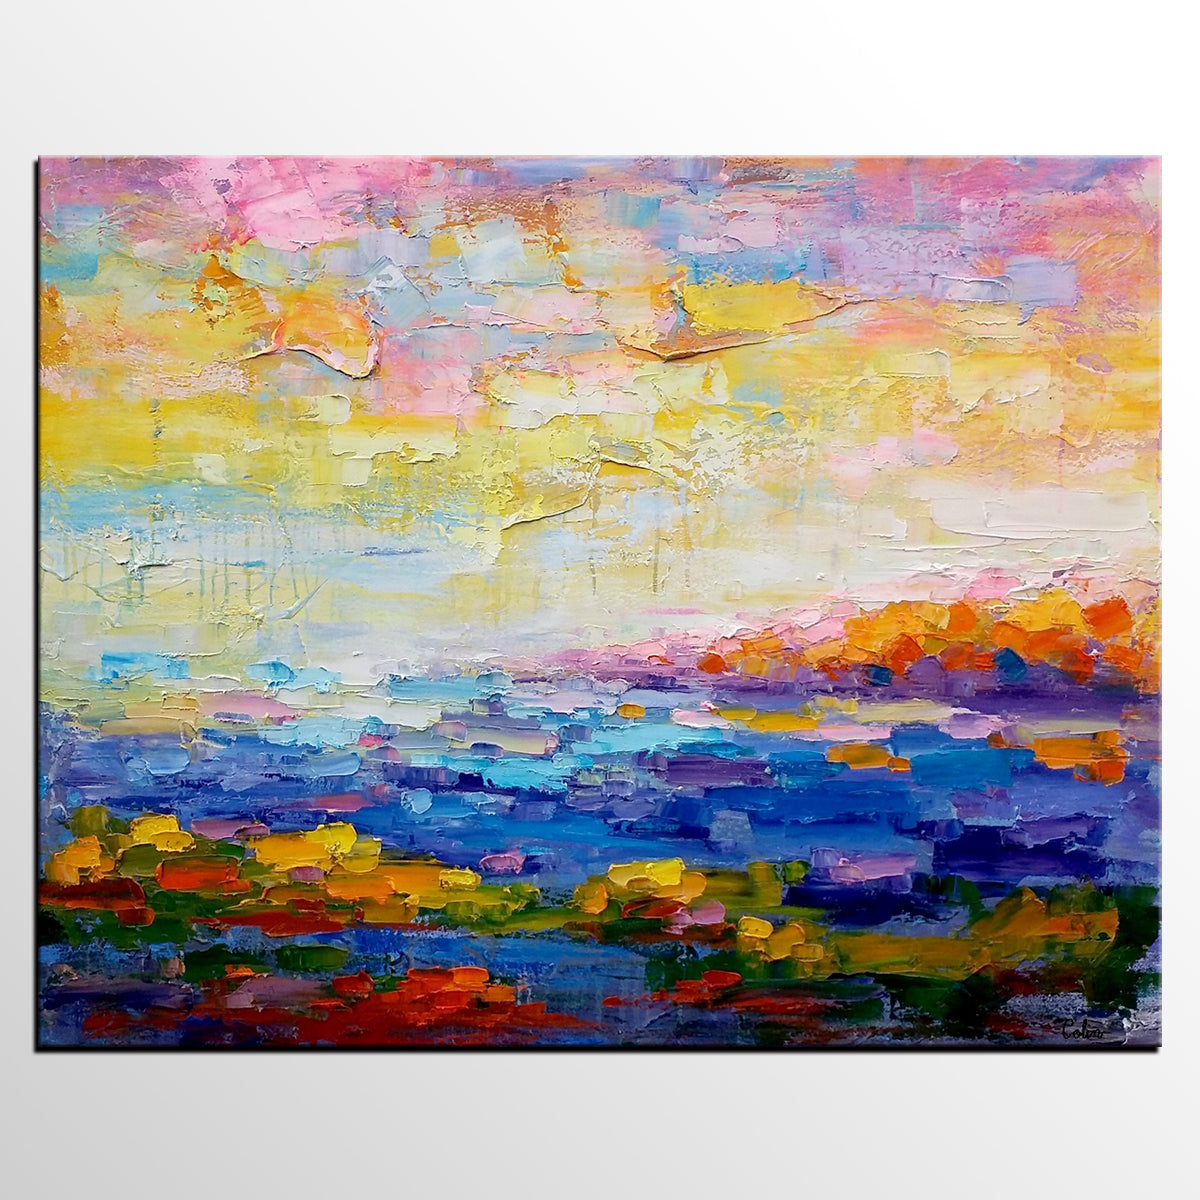 Oil Painting, Abstract Landscape Painting, Large Art, Canvas Art, Contemporary Artwork-artworkcanvas